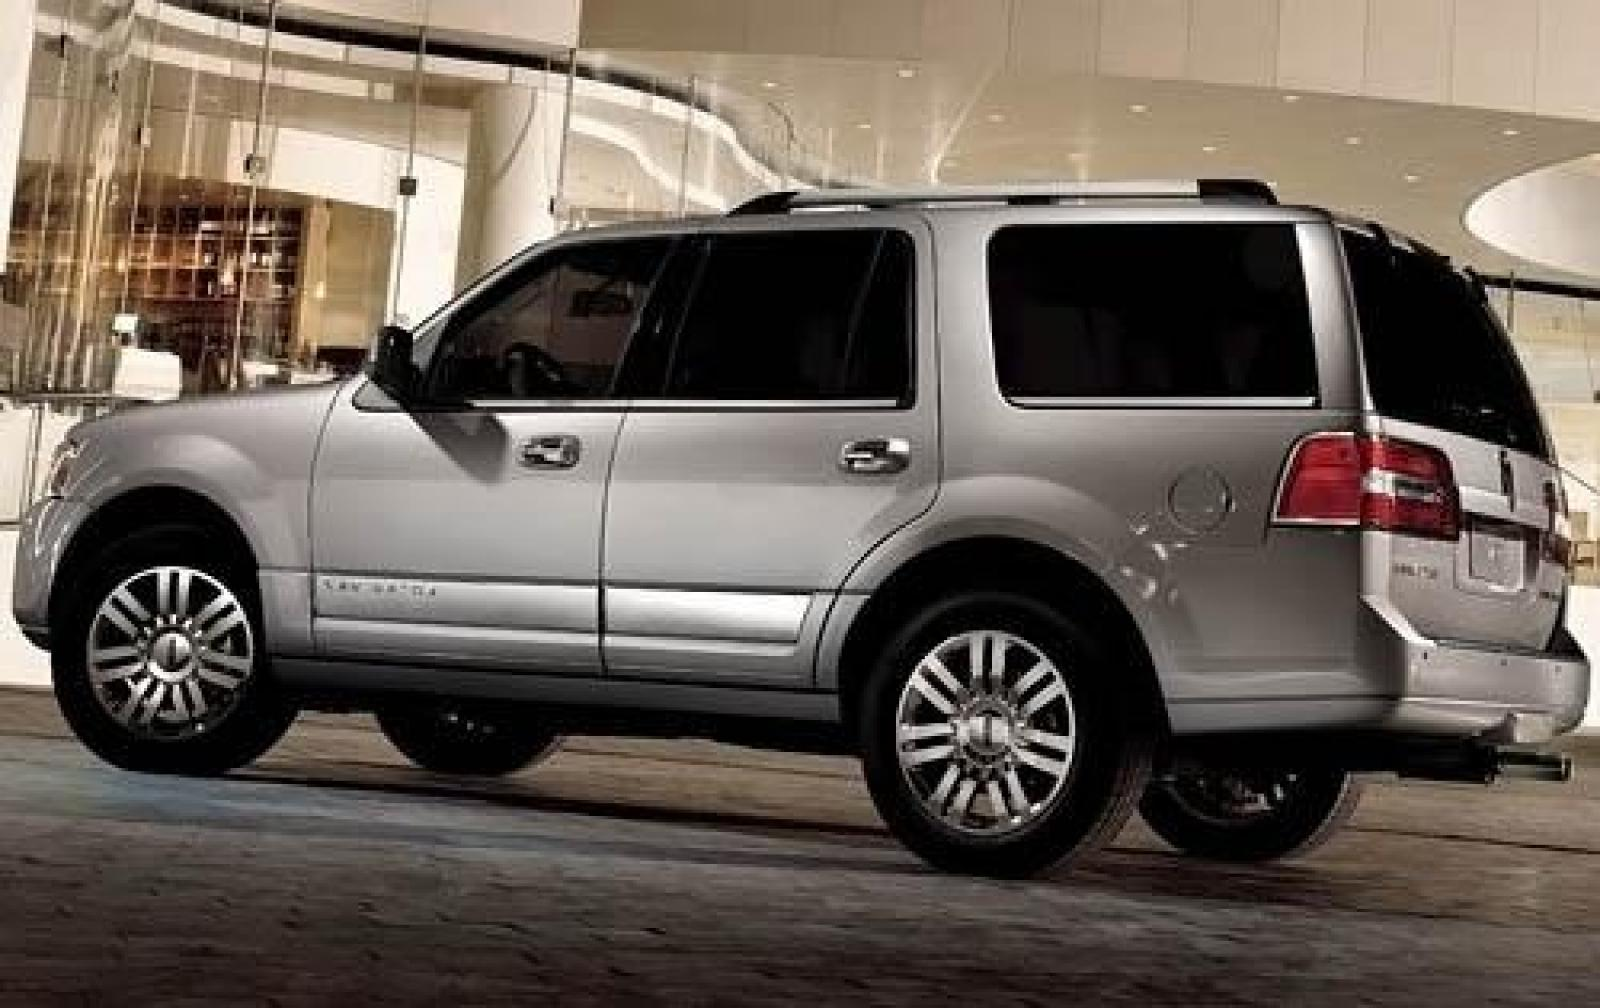 2012 lincoln navigator information and photos zombiedrive. Black Bedroom Furniture Sets. Home Design Ideas